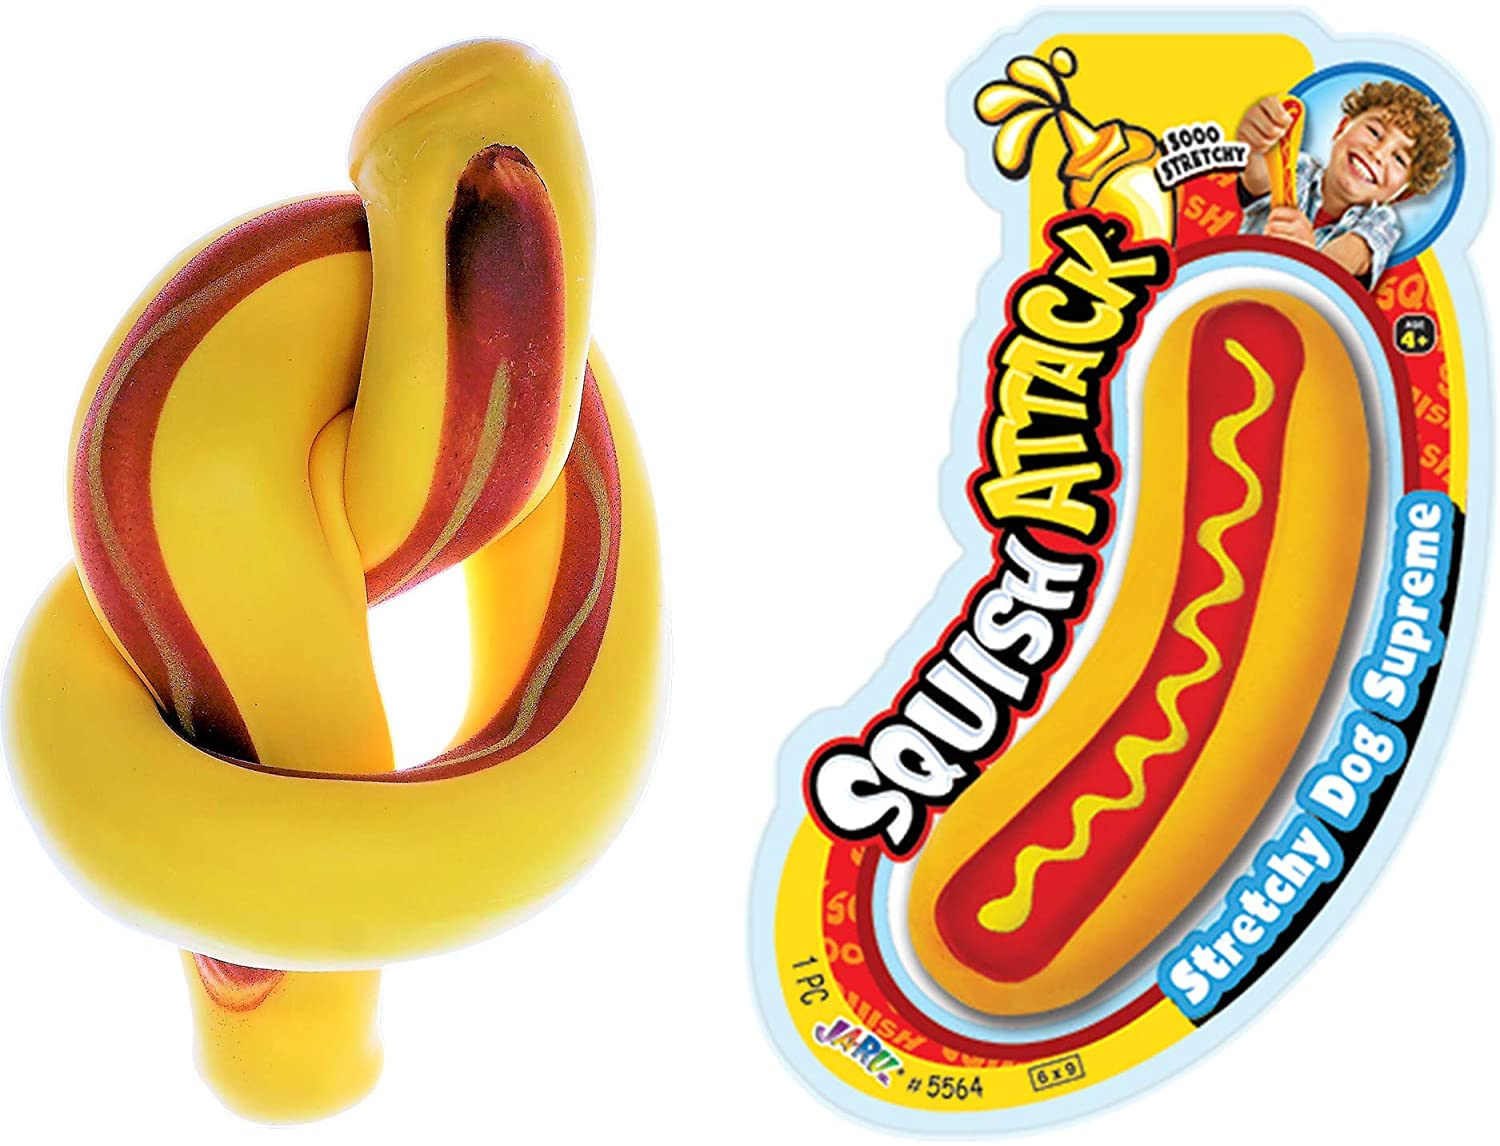 JA-RU Stretchy Hot Dog Squishy Toys (1 Unit) Anxiety Stress Relief Toys   Sensory Toys for Autistic Children Kids and Fidget Stress Toys for Adults. Great Party Favor Supply. 5564-1A